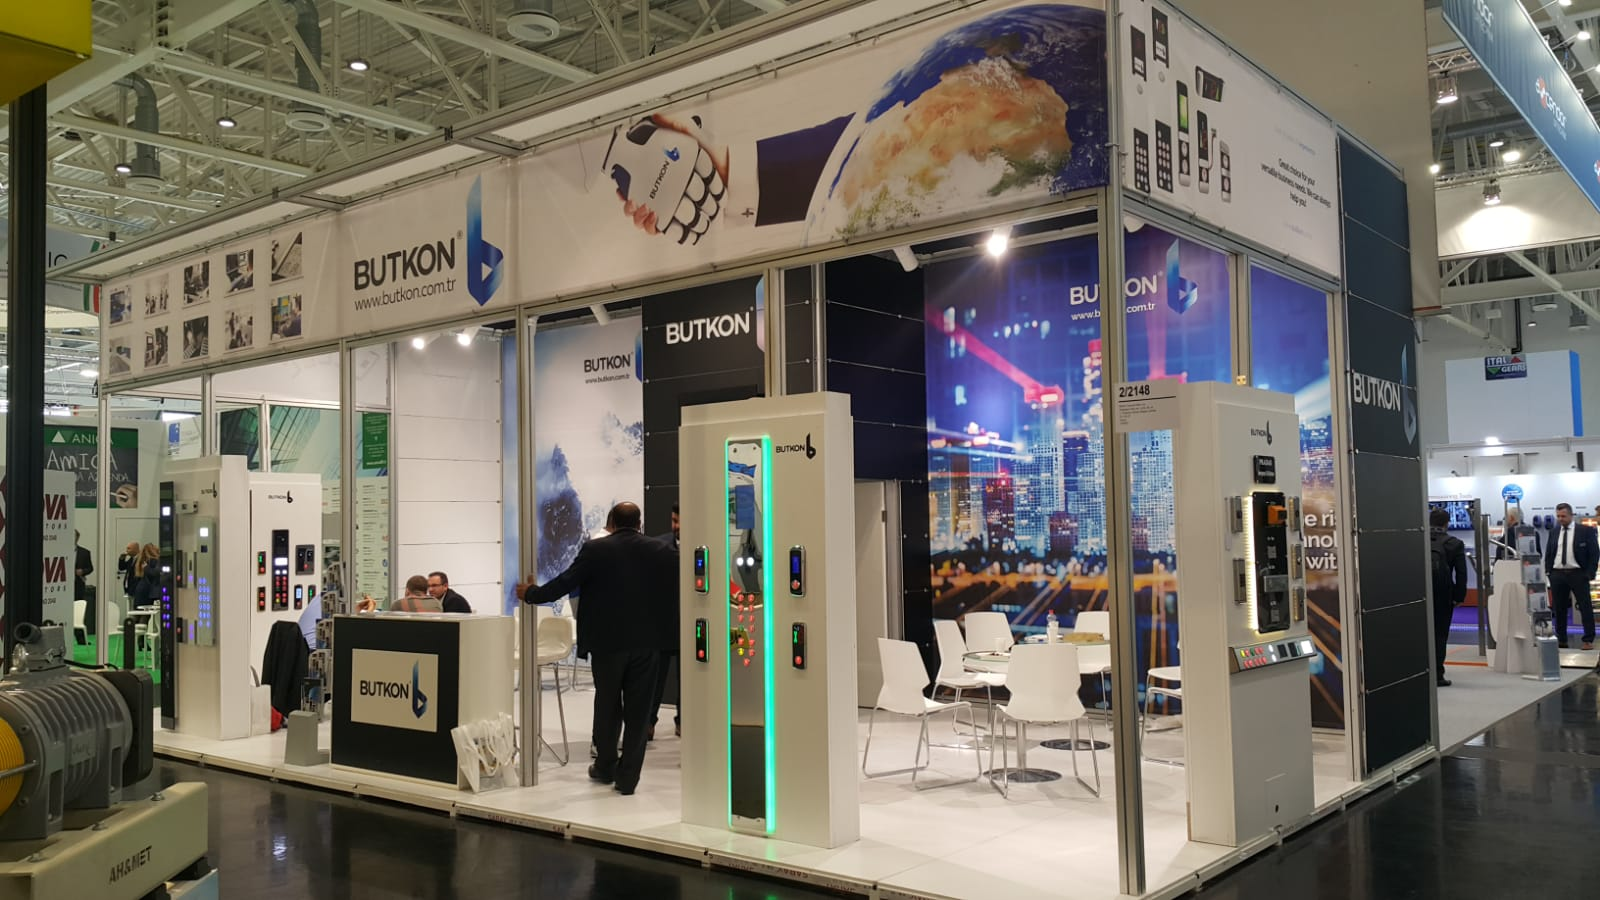 <a href='application-detail/183'>CLICK HERE - INTERLIFT 2019 AUGSBURG GERMANY BUTKON  STAND   SHOW MORE<a/>